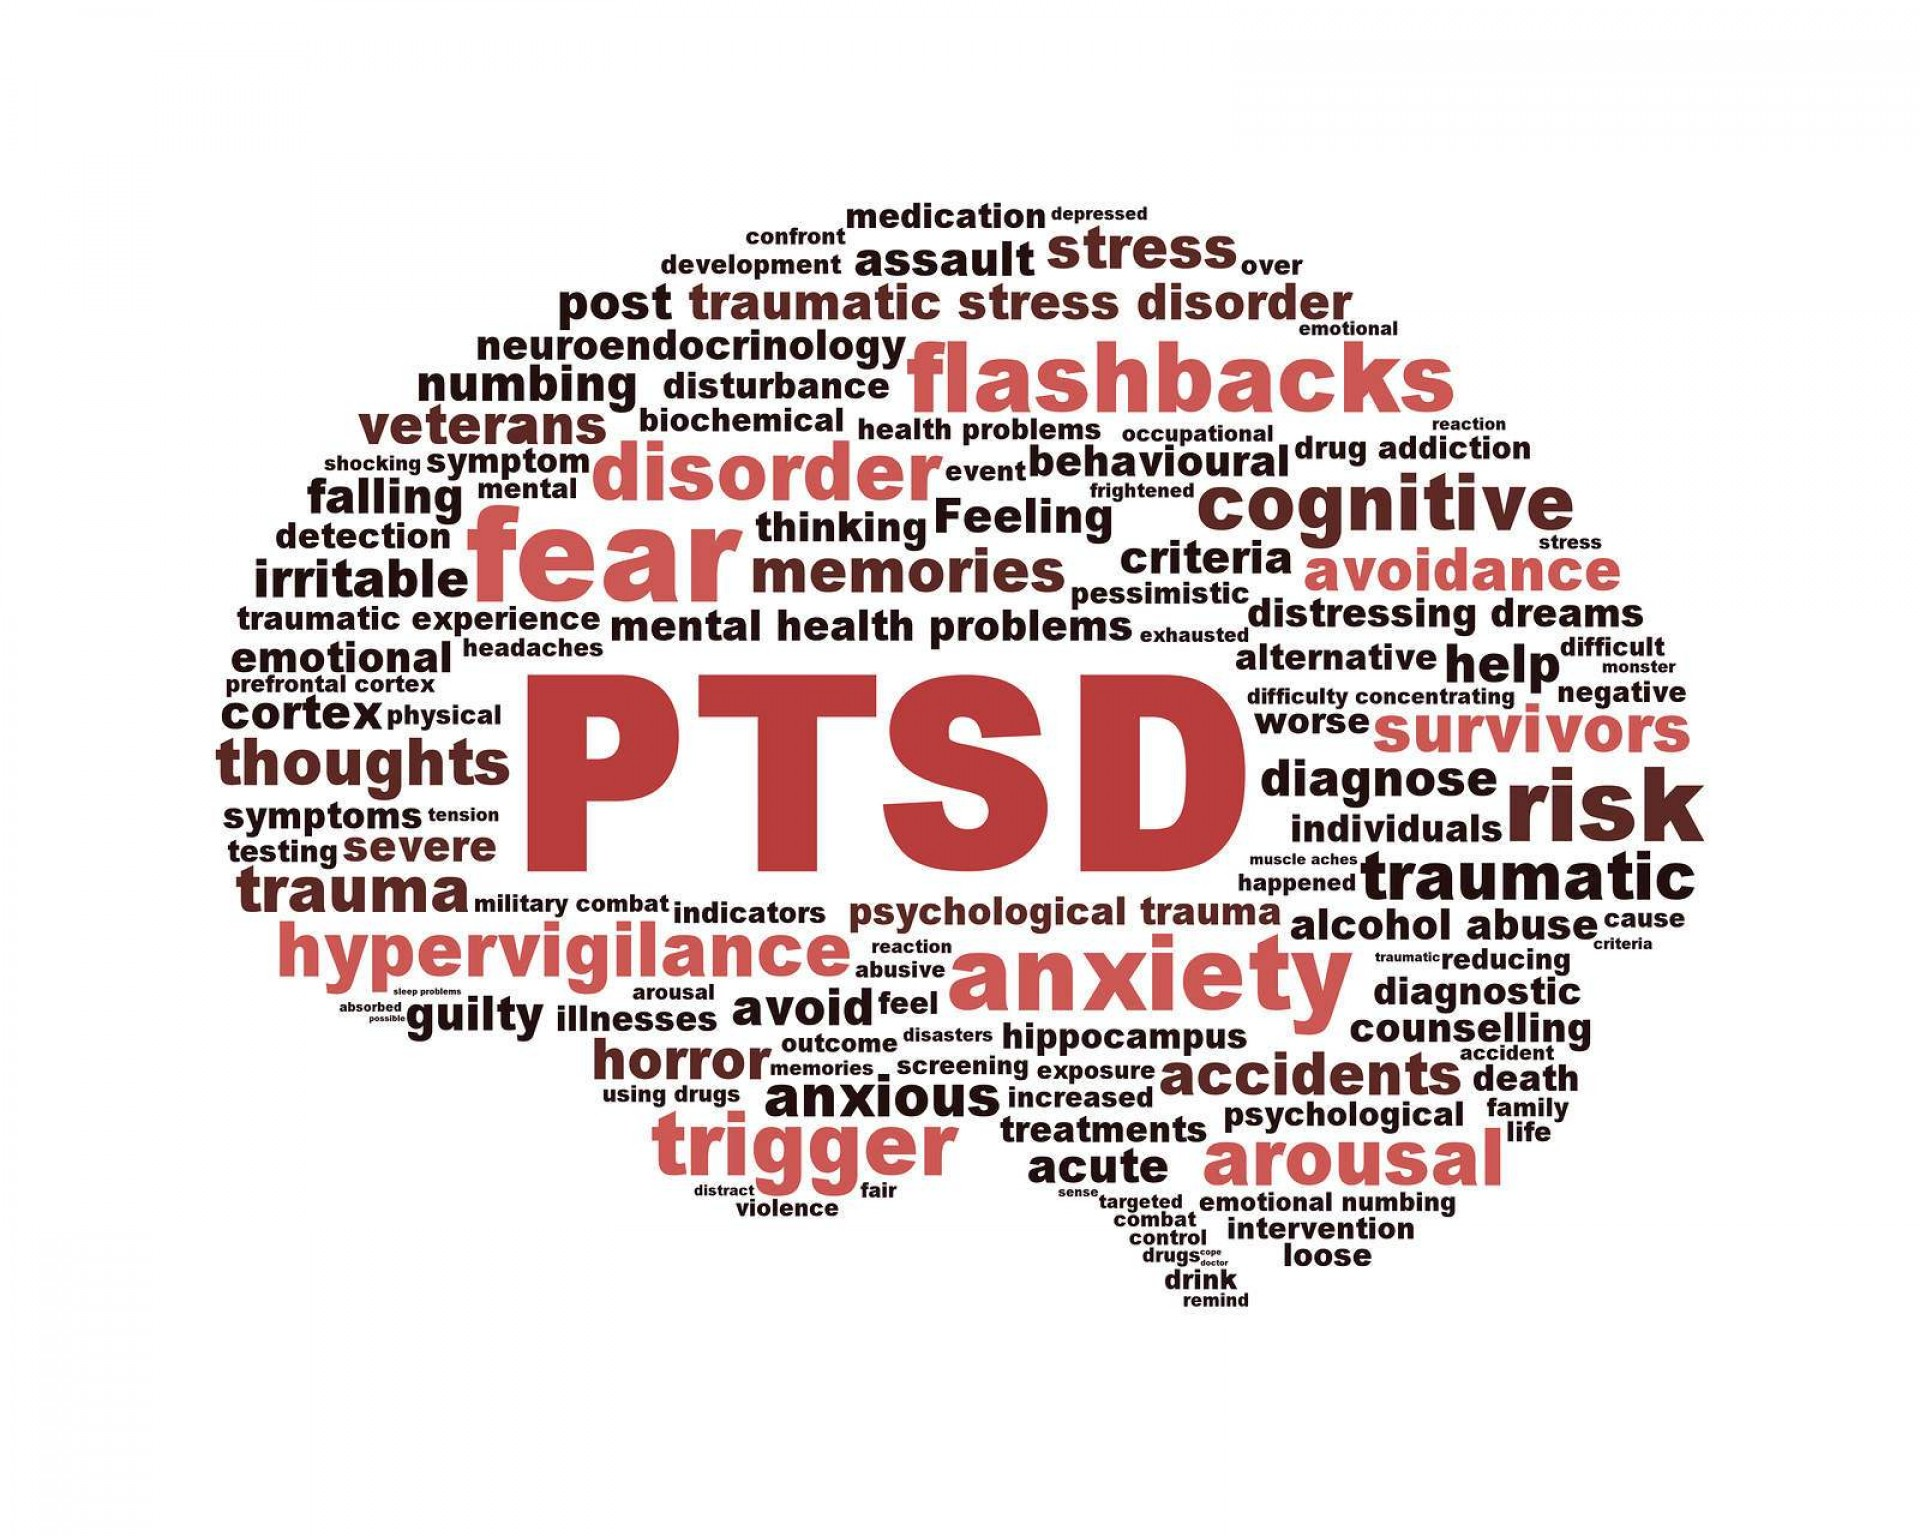 018 Latest Research On Post Traumatic Stress Disorder Ptsd Magnificent Information Paper Topics 1920